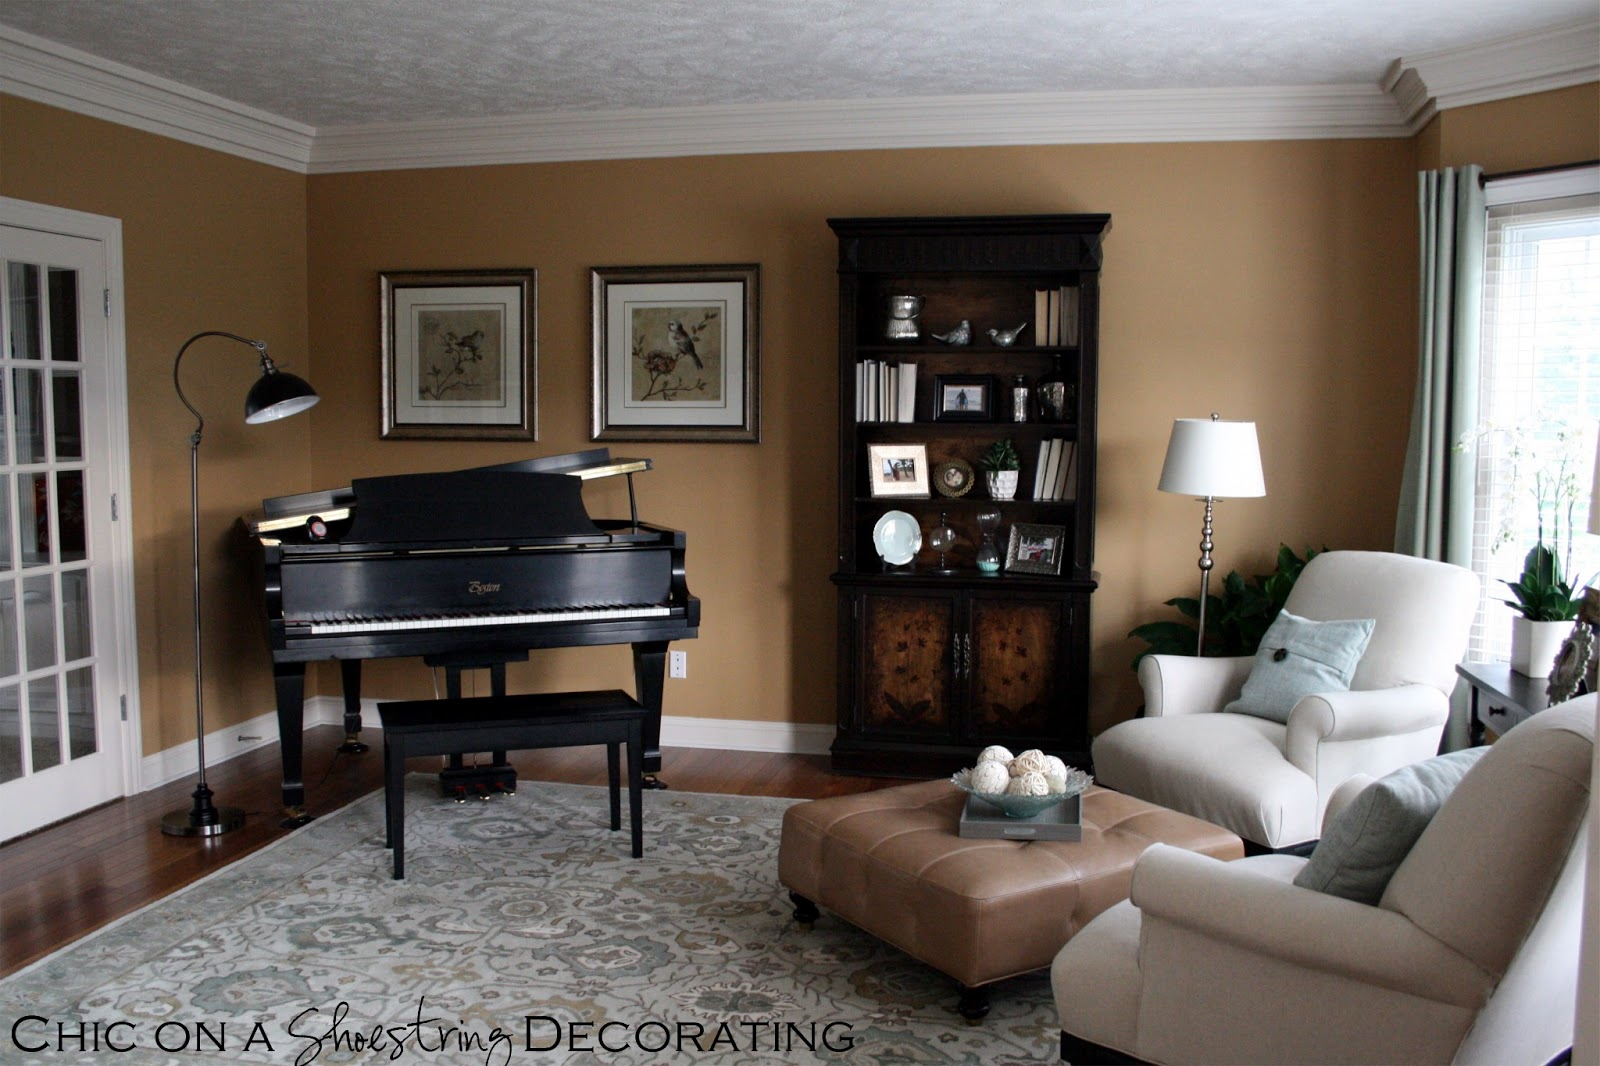 Chic on a shoestring decorating grand piano living room for Piano for small space